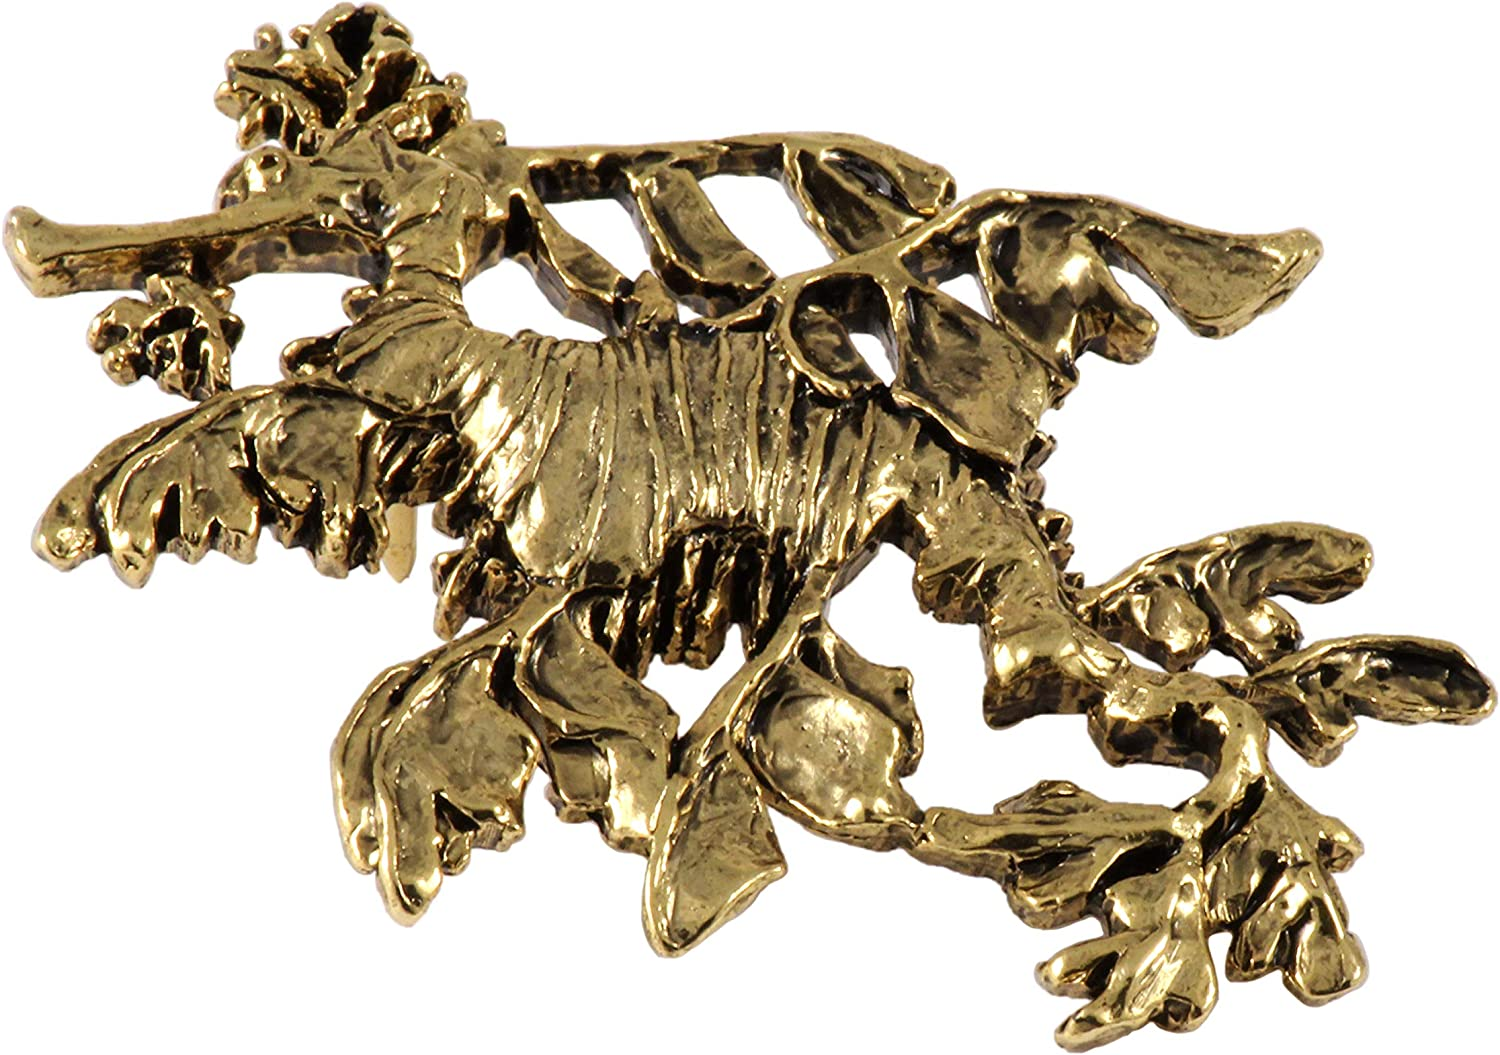 A162A Jewelry Sea Dragon Seahorse Leafy Pewter Lapel Pin Brooch